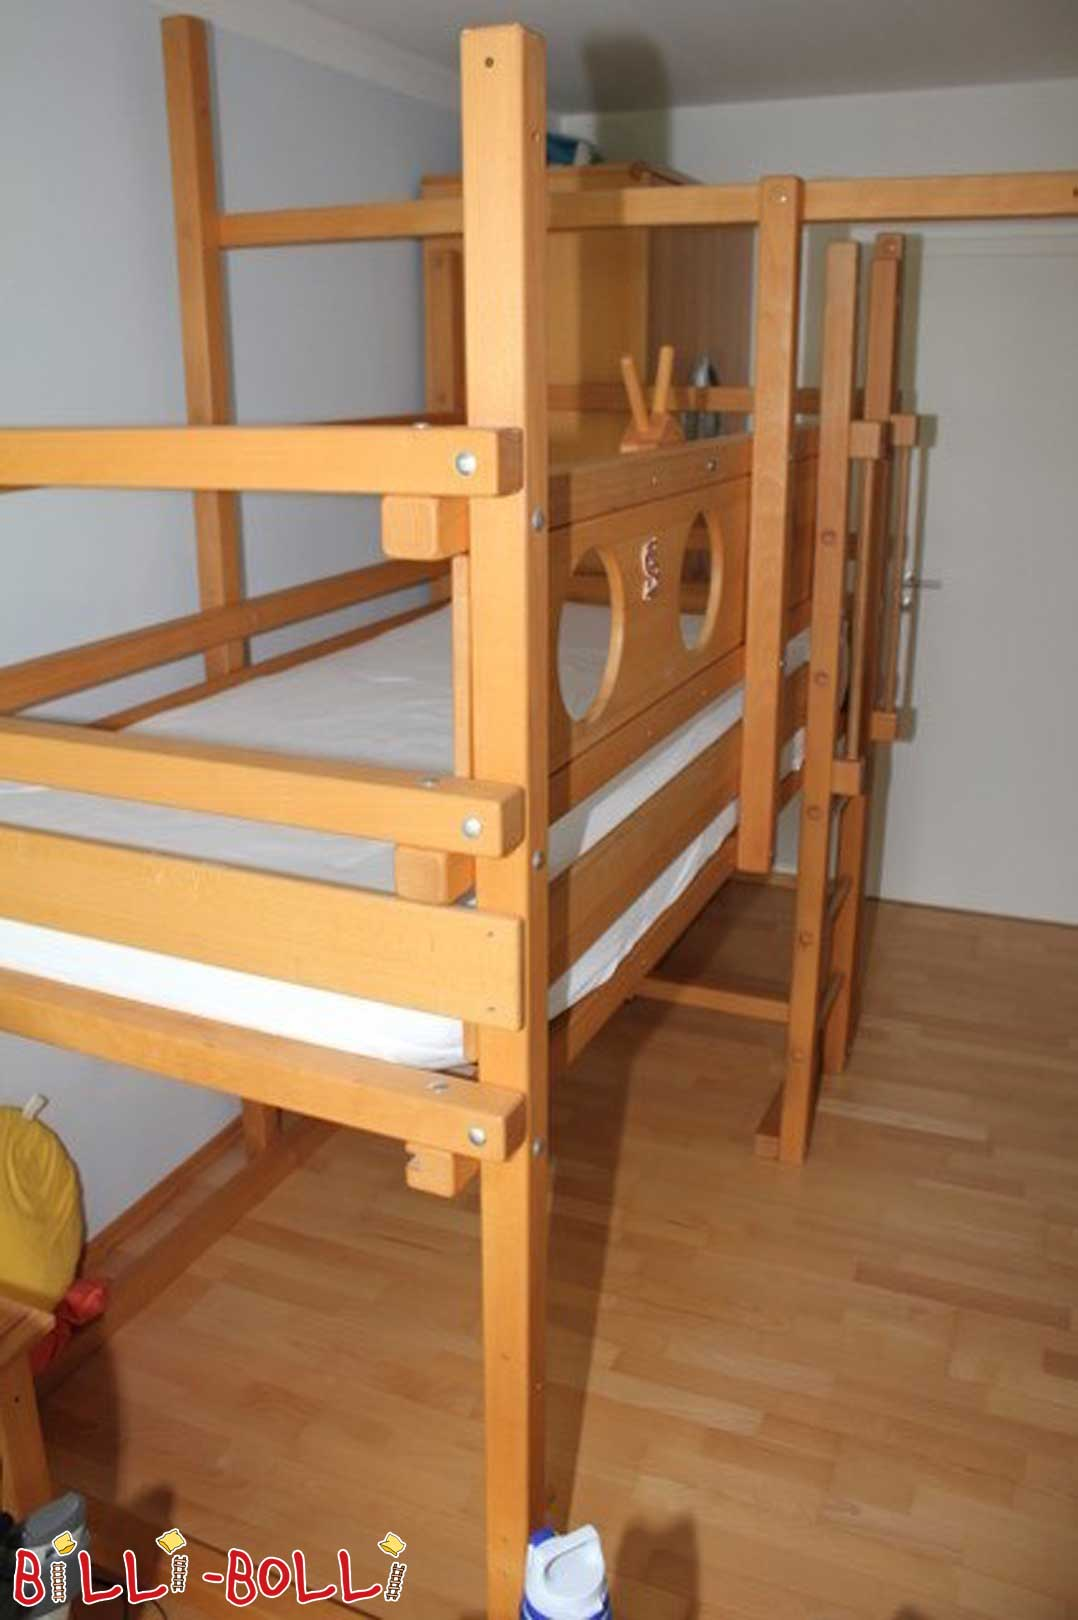 Growing up bed (second hand loft bed)